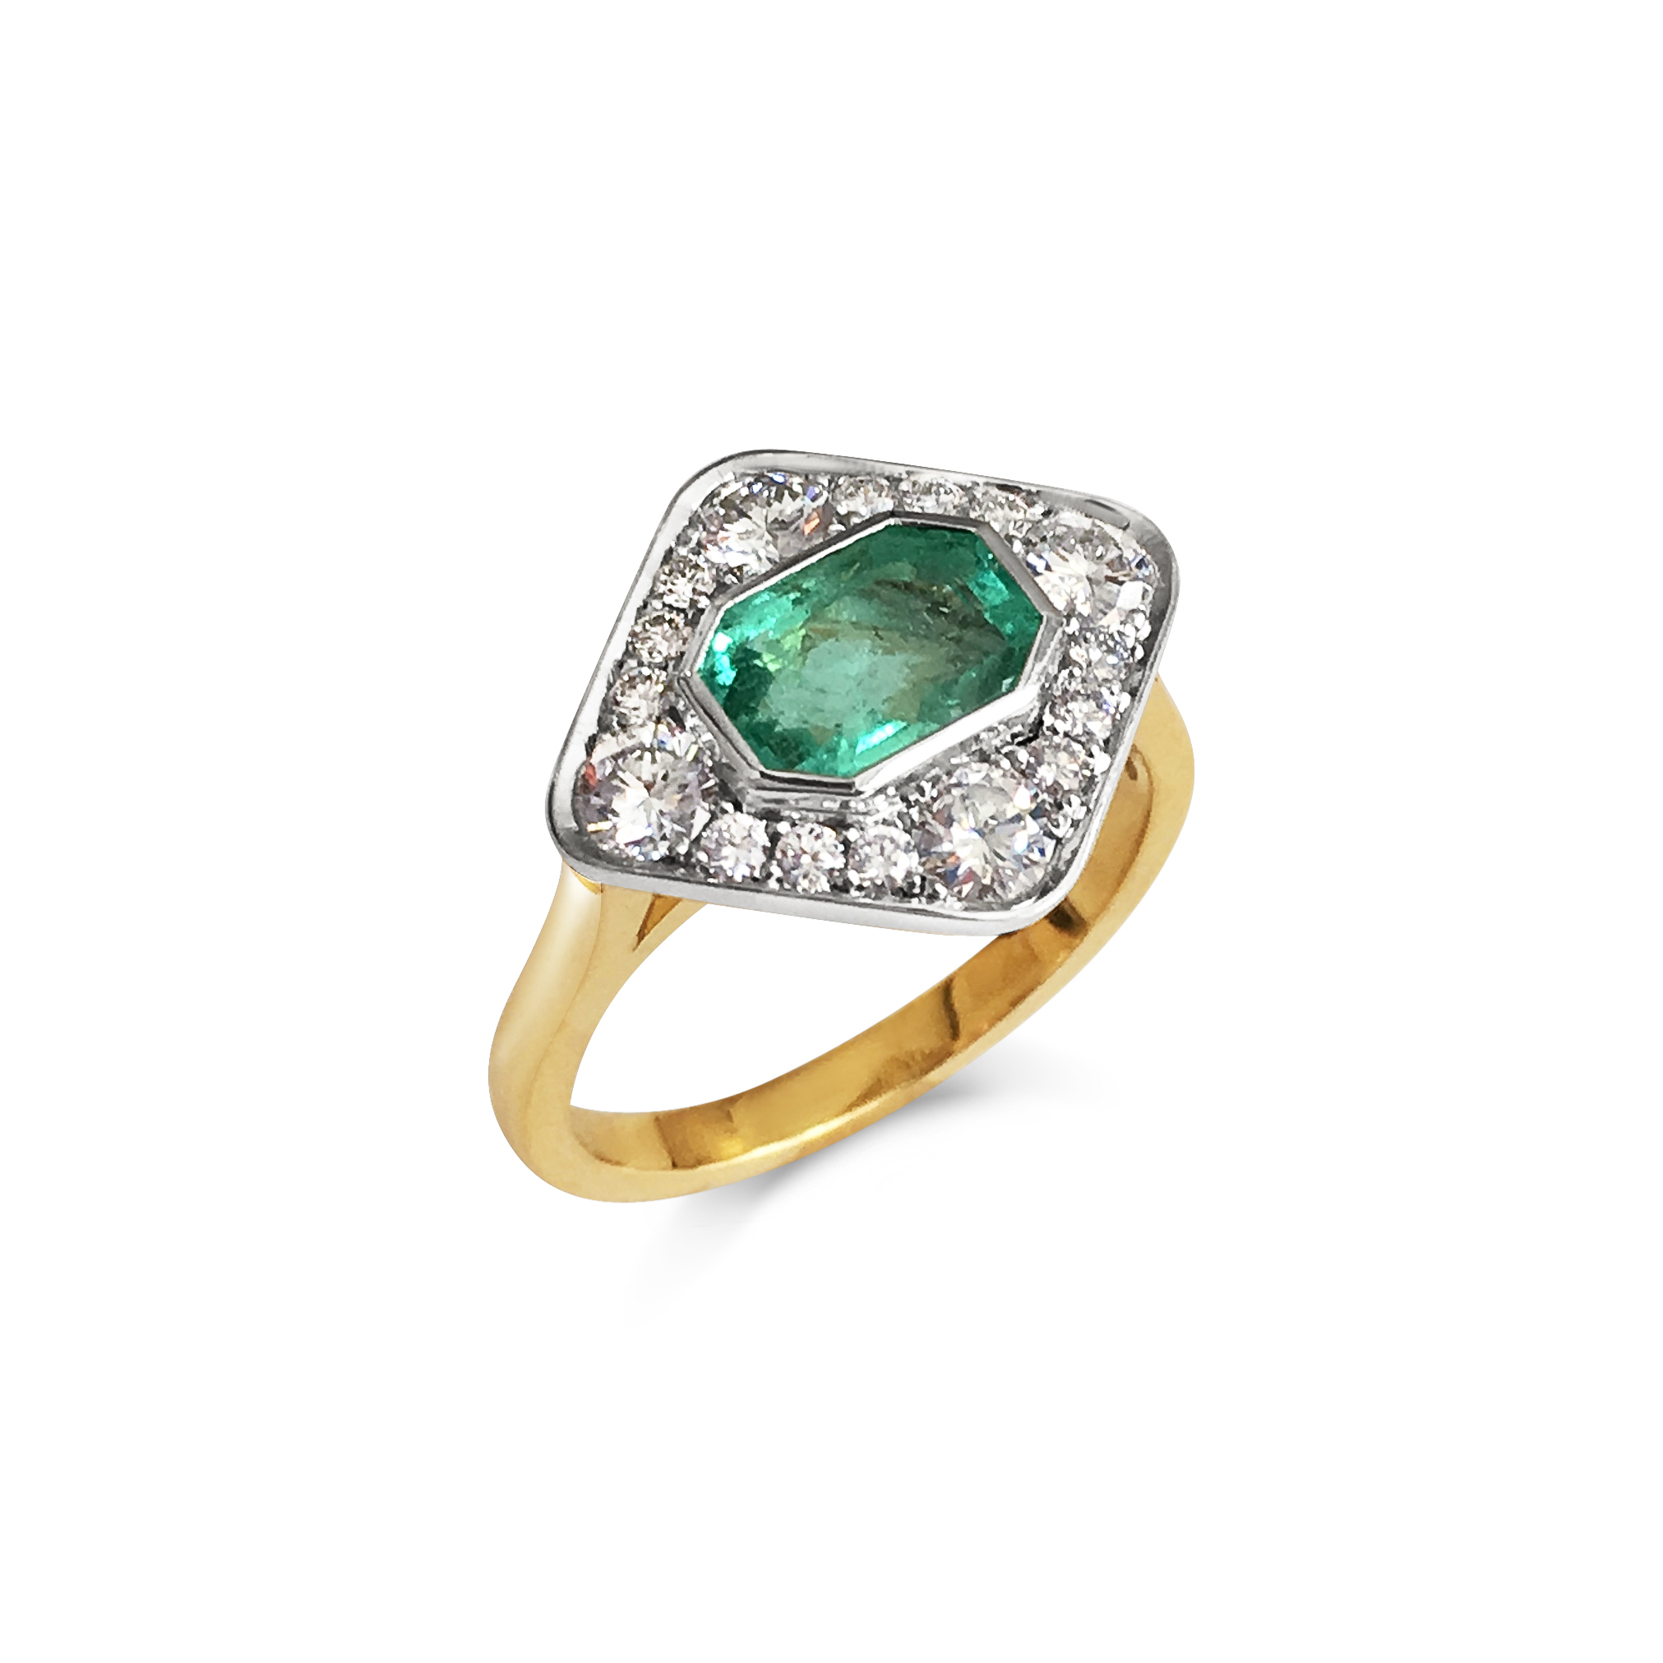 Emerald and diamond panel ring mounted in 18ct white and yellow gold